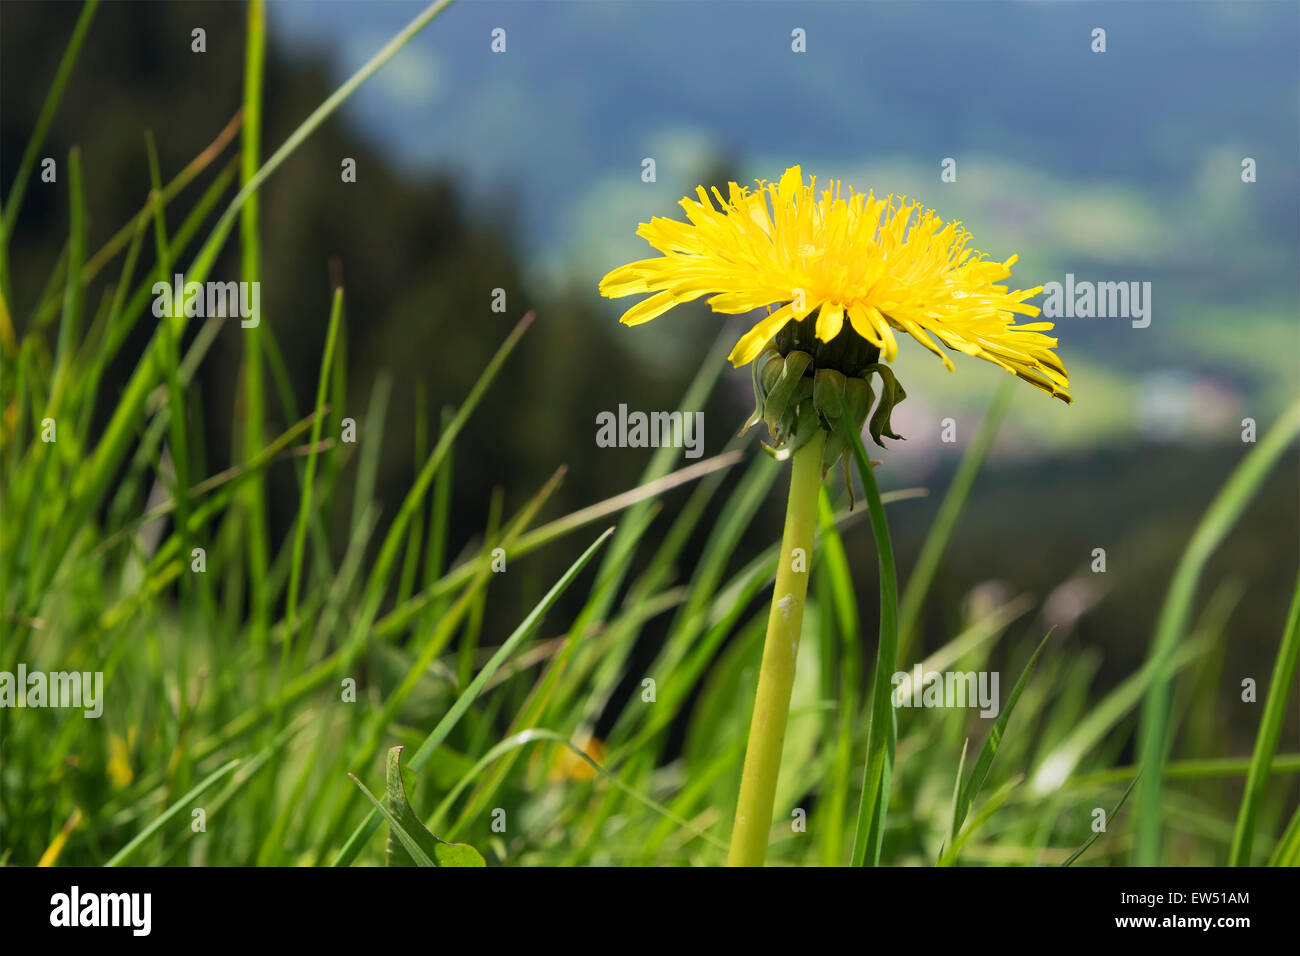 Dandelion flower on mountain Breitenstein in the Alps in Bavaria, Germany - Stock Image